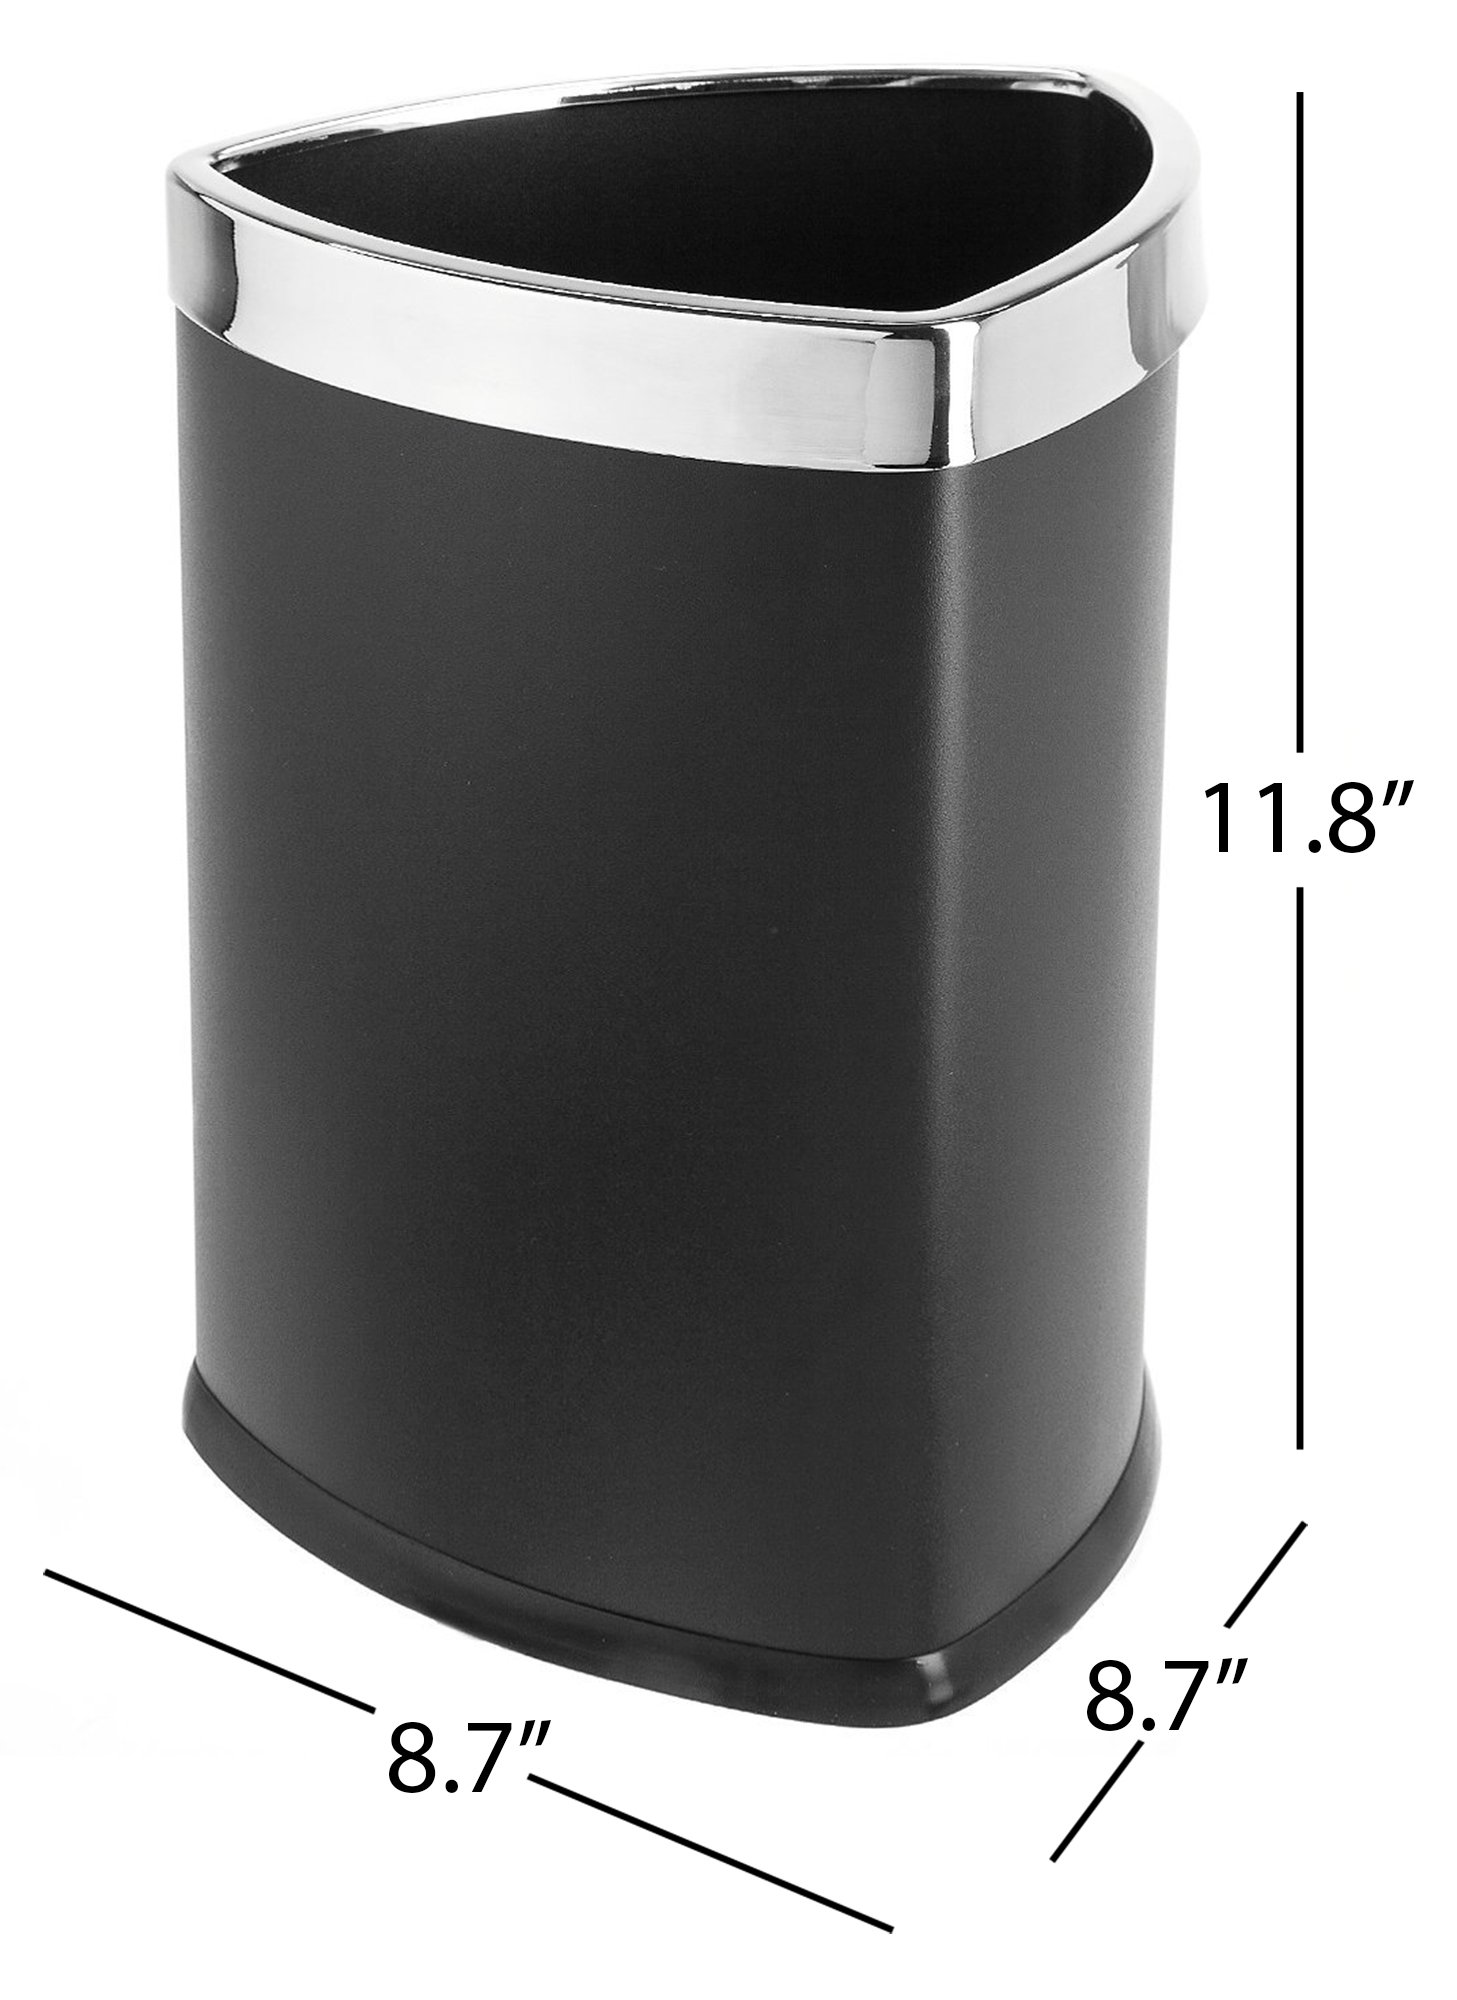 Bennett Magnificent Designed ''Triangle Shape'' Wastebasket, Small Office Open Top Metal Trash Can, (Black)